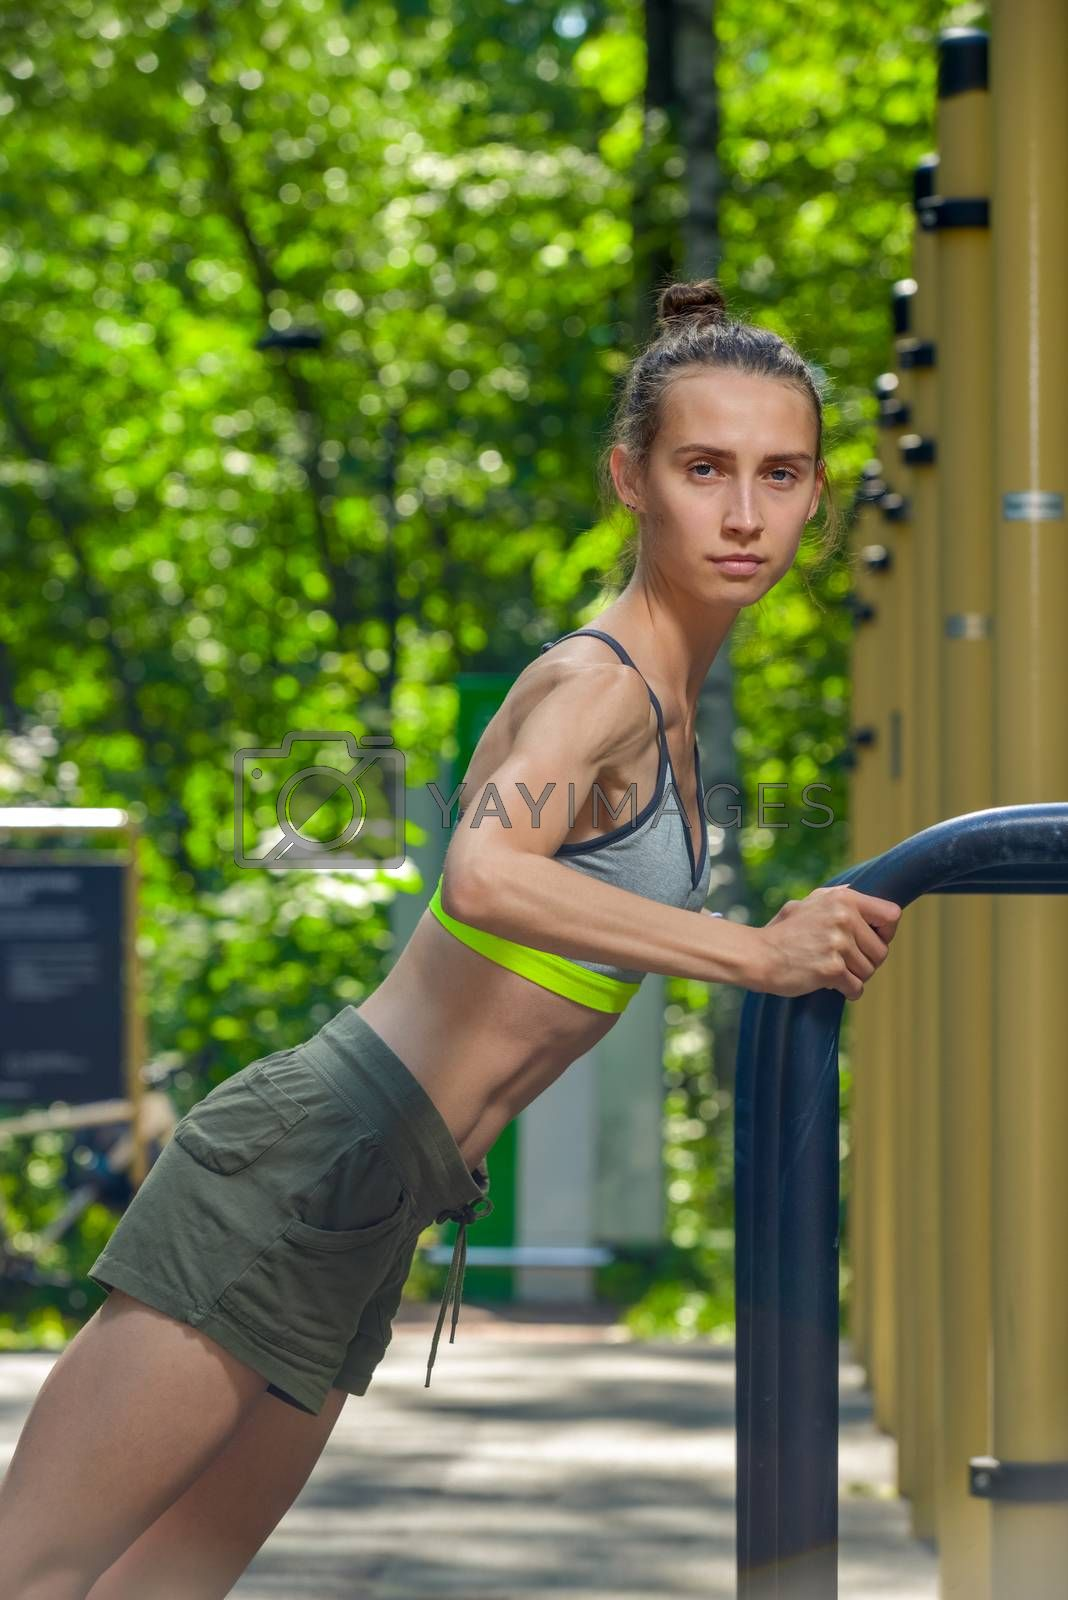 shooting sportswoman with a muscular figure on the sports field by Labunskiy K.